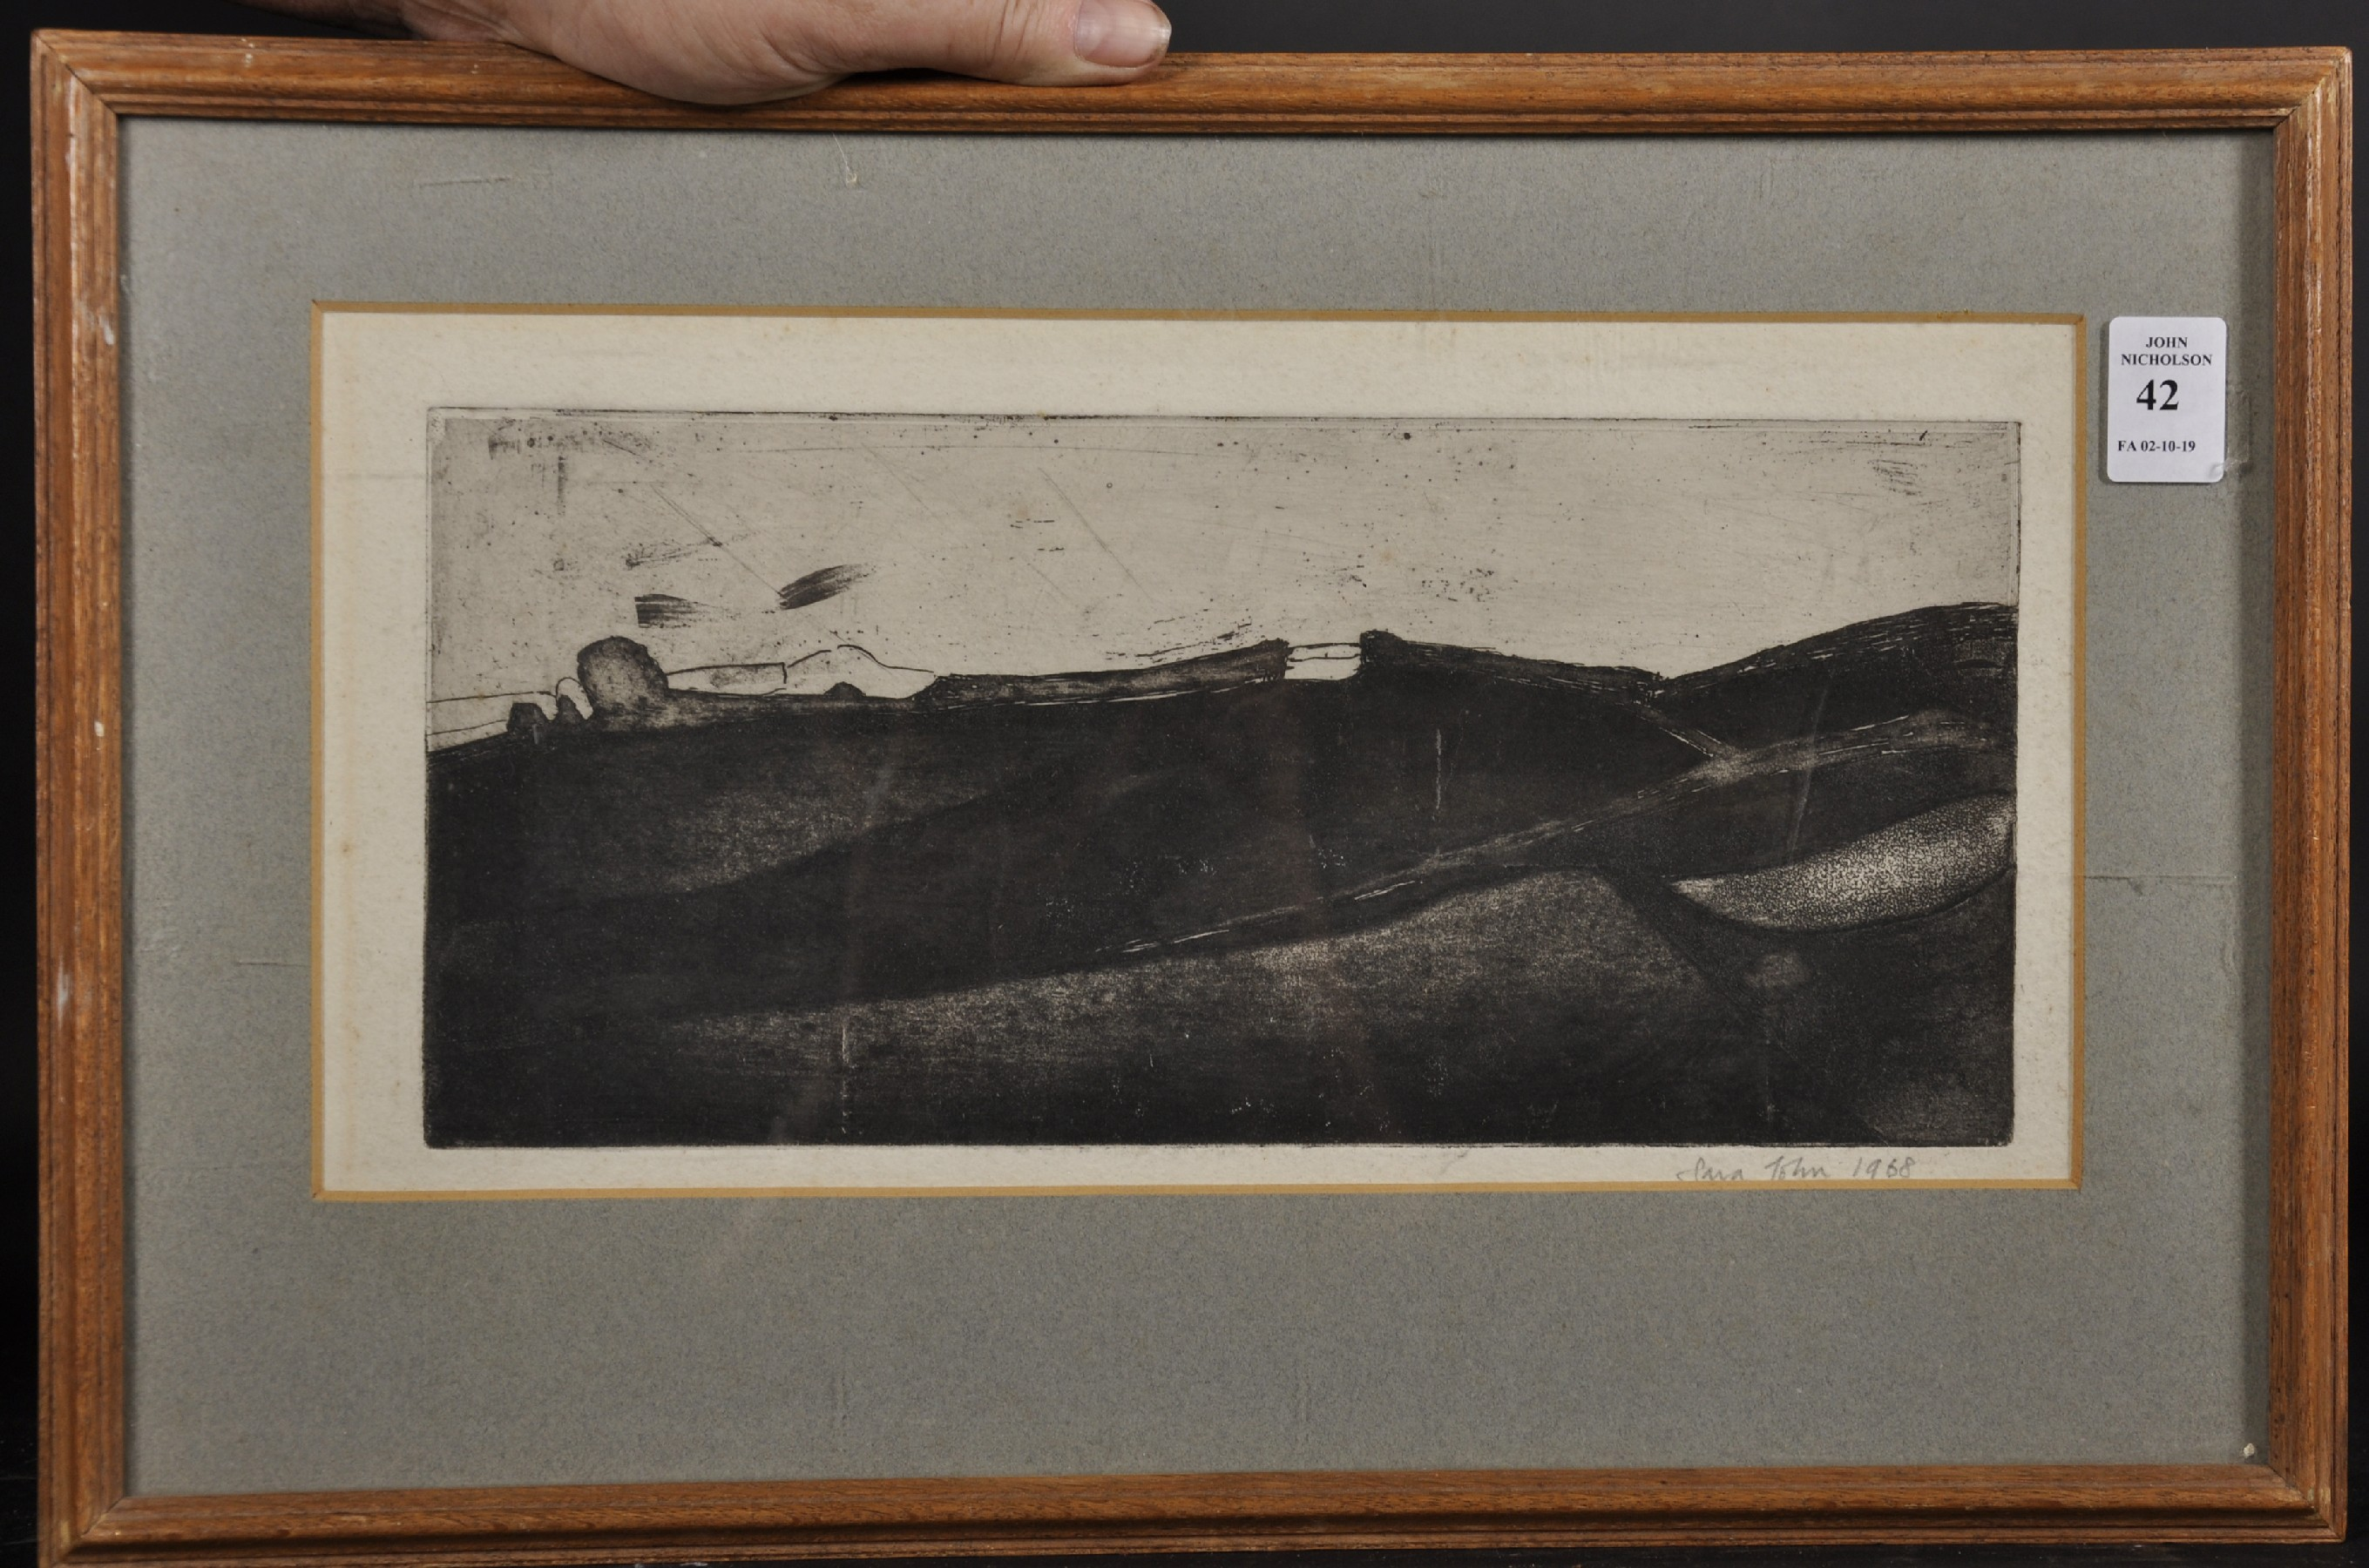 """Sara John (1946- ) British. An Abstract Landscape, Etching, Signed and Dated 1968 in Pencil, 5.5"""" - Image 2 of 4"""